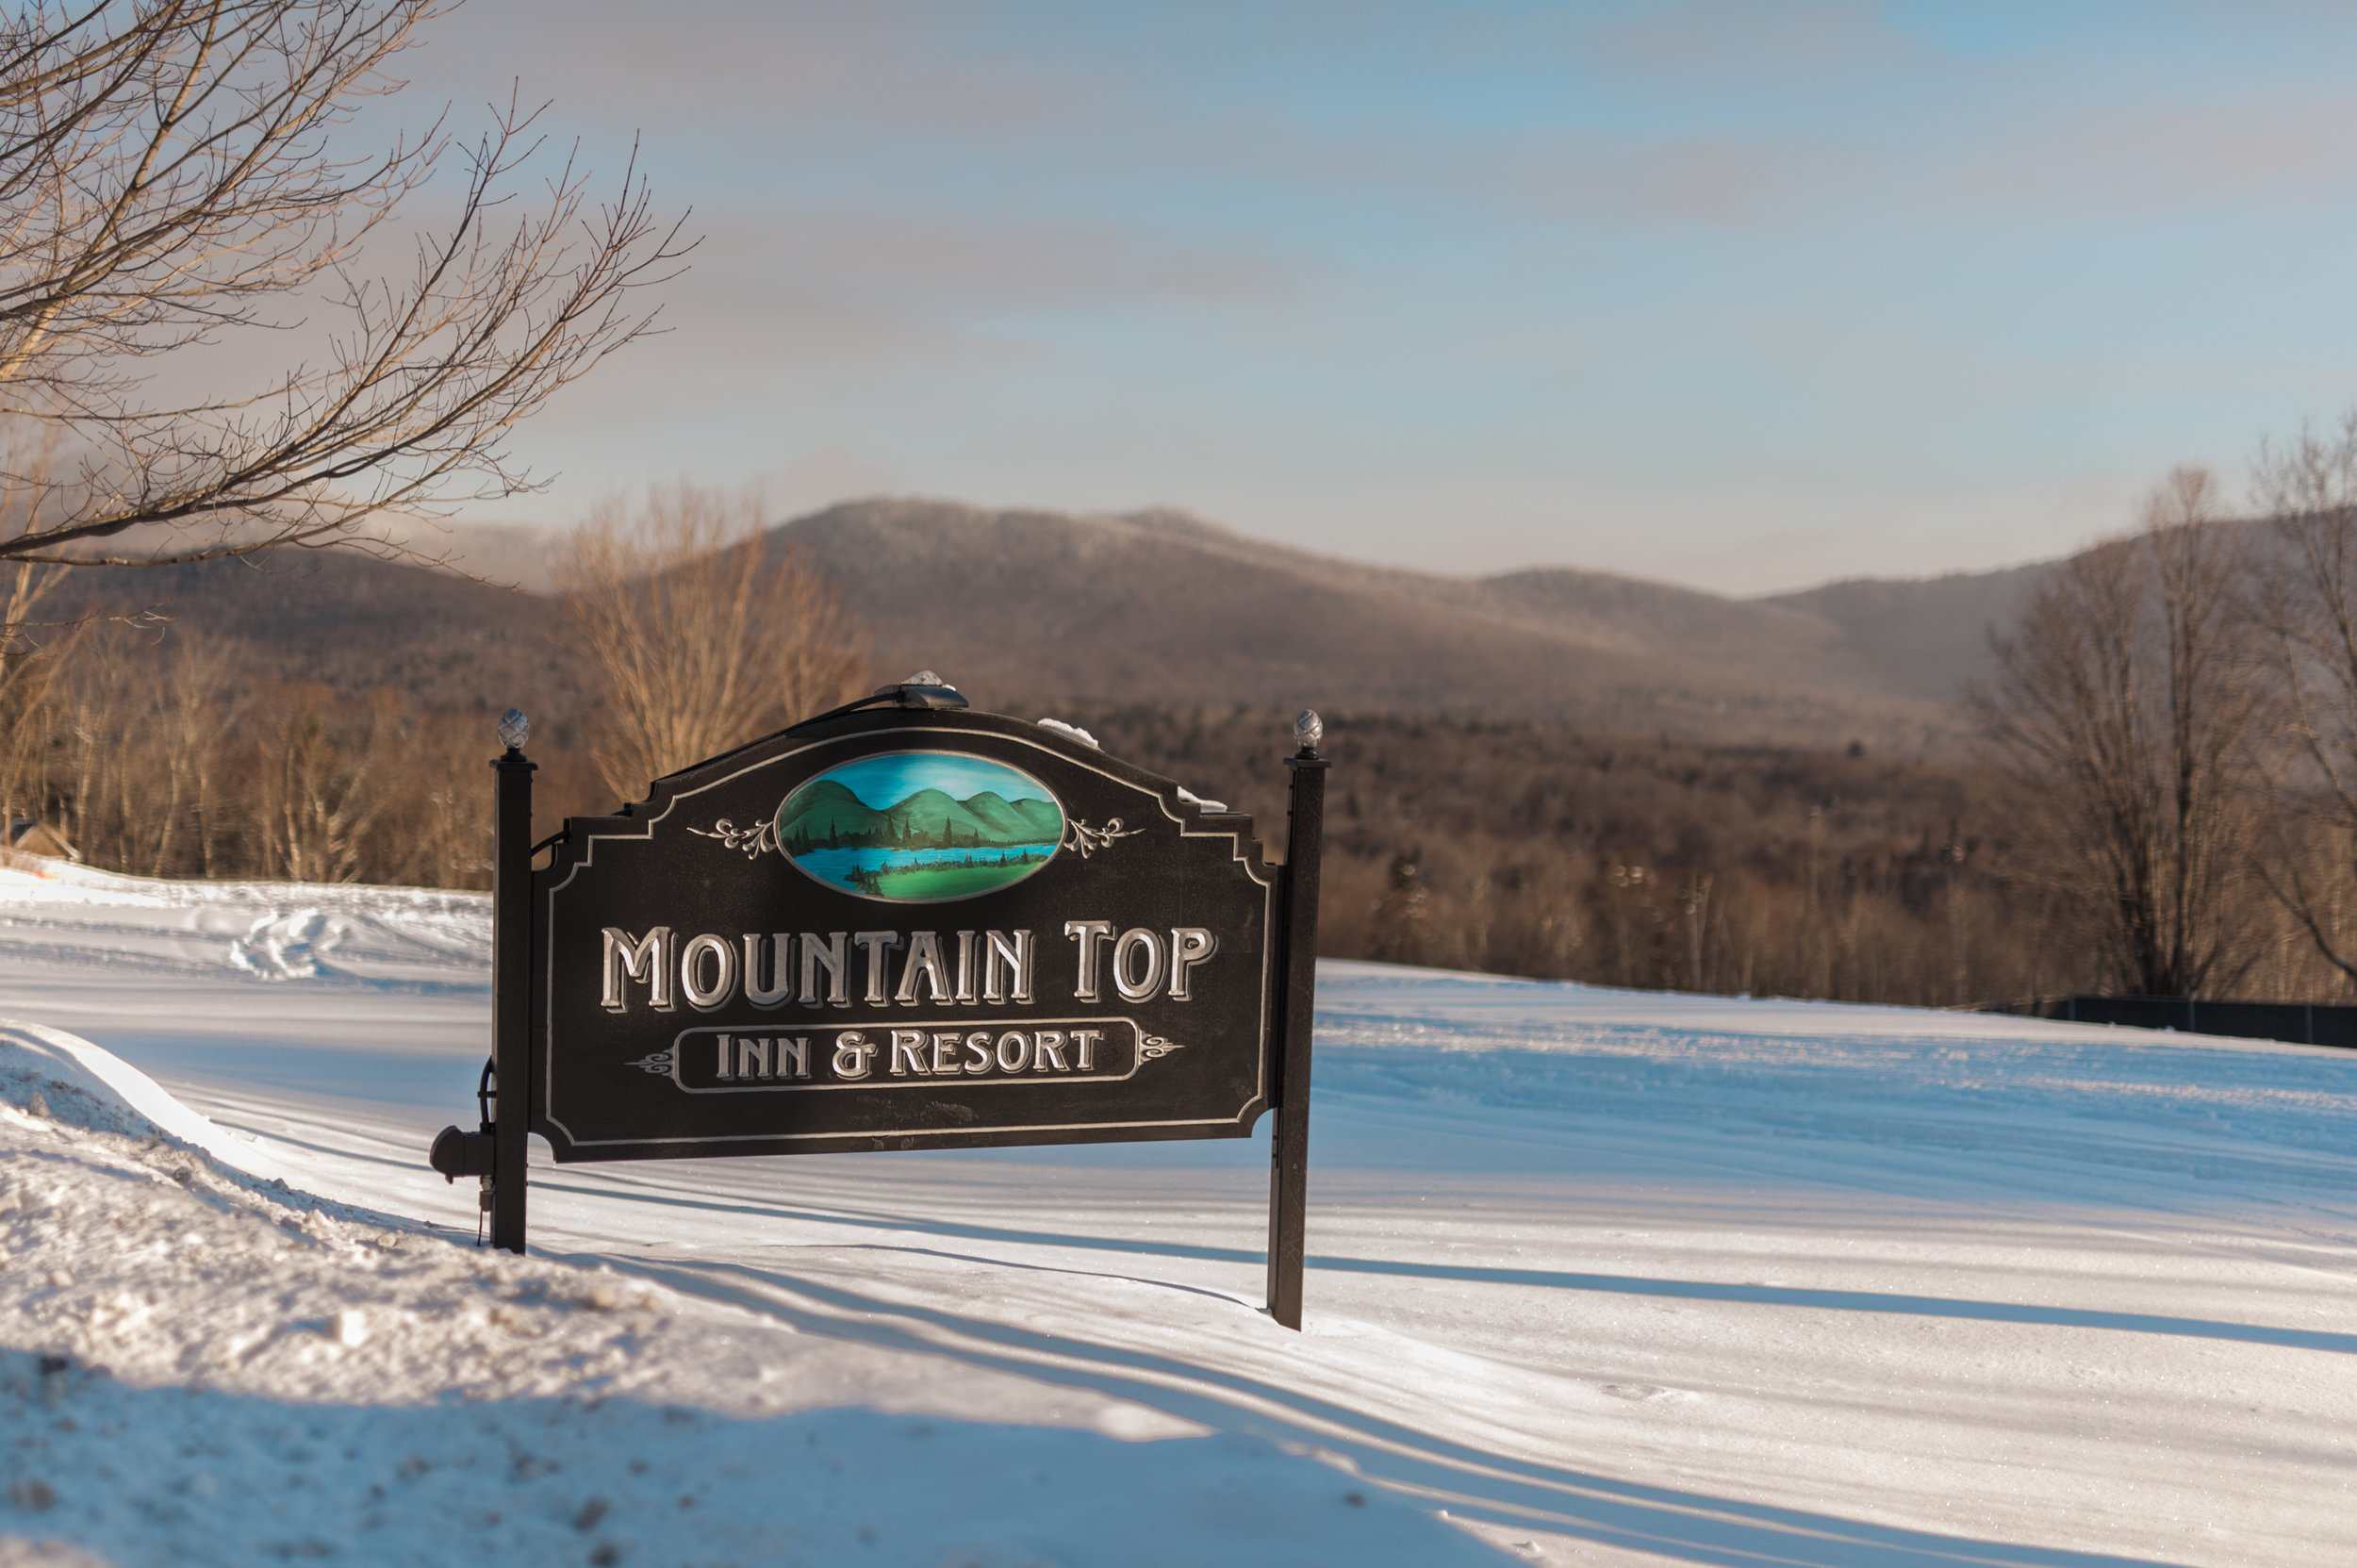 vermont winter wedding at the mountain top inn and resort | vermont